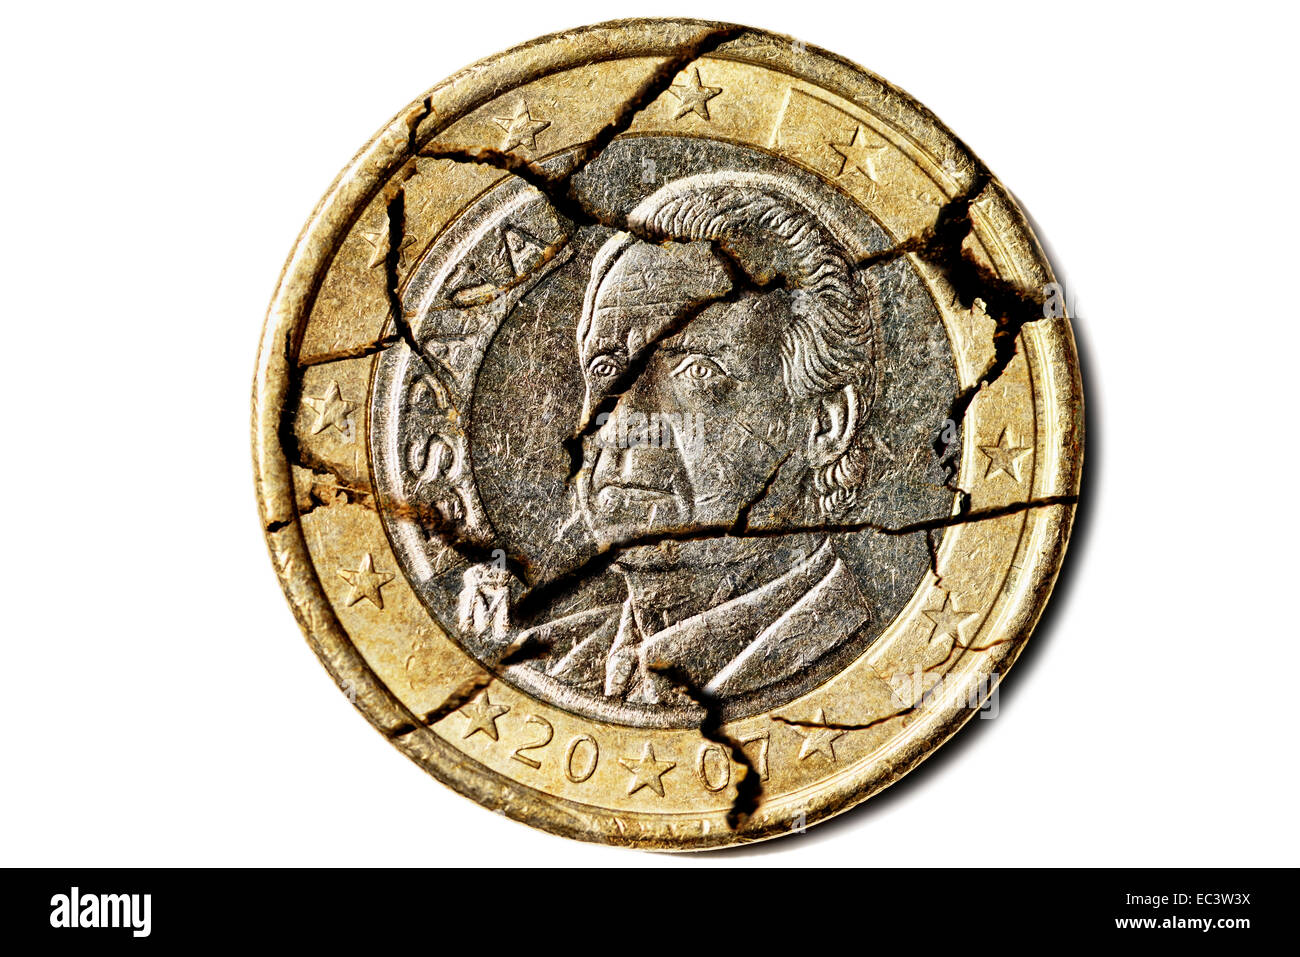 Spanish one euro coin with cracks, debt crisis in Spain - Stock Image